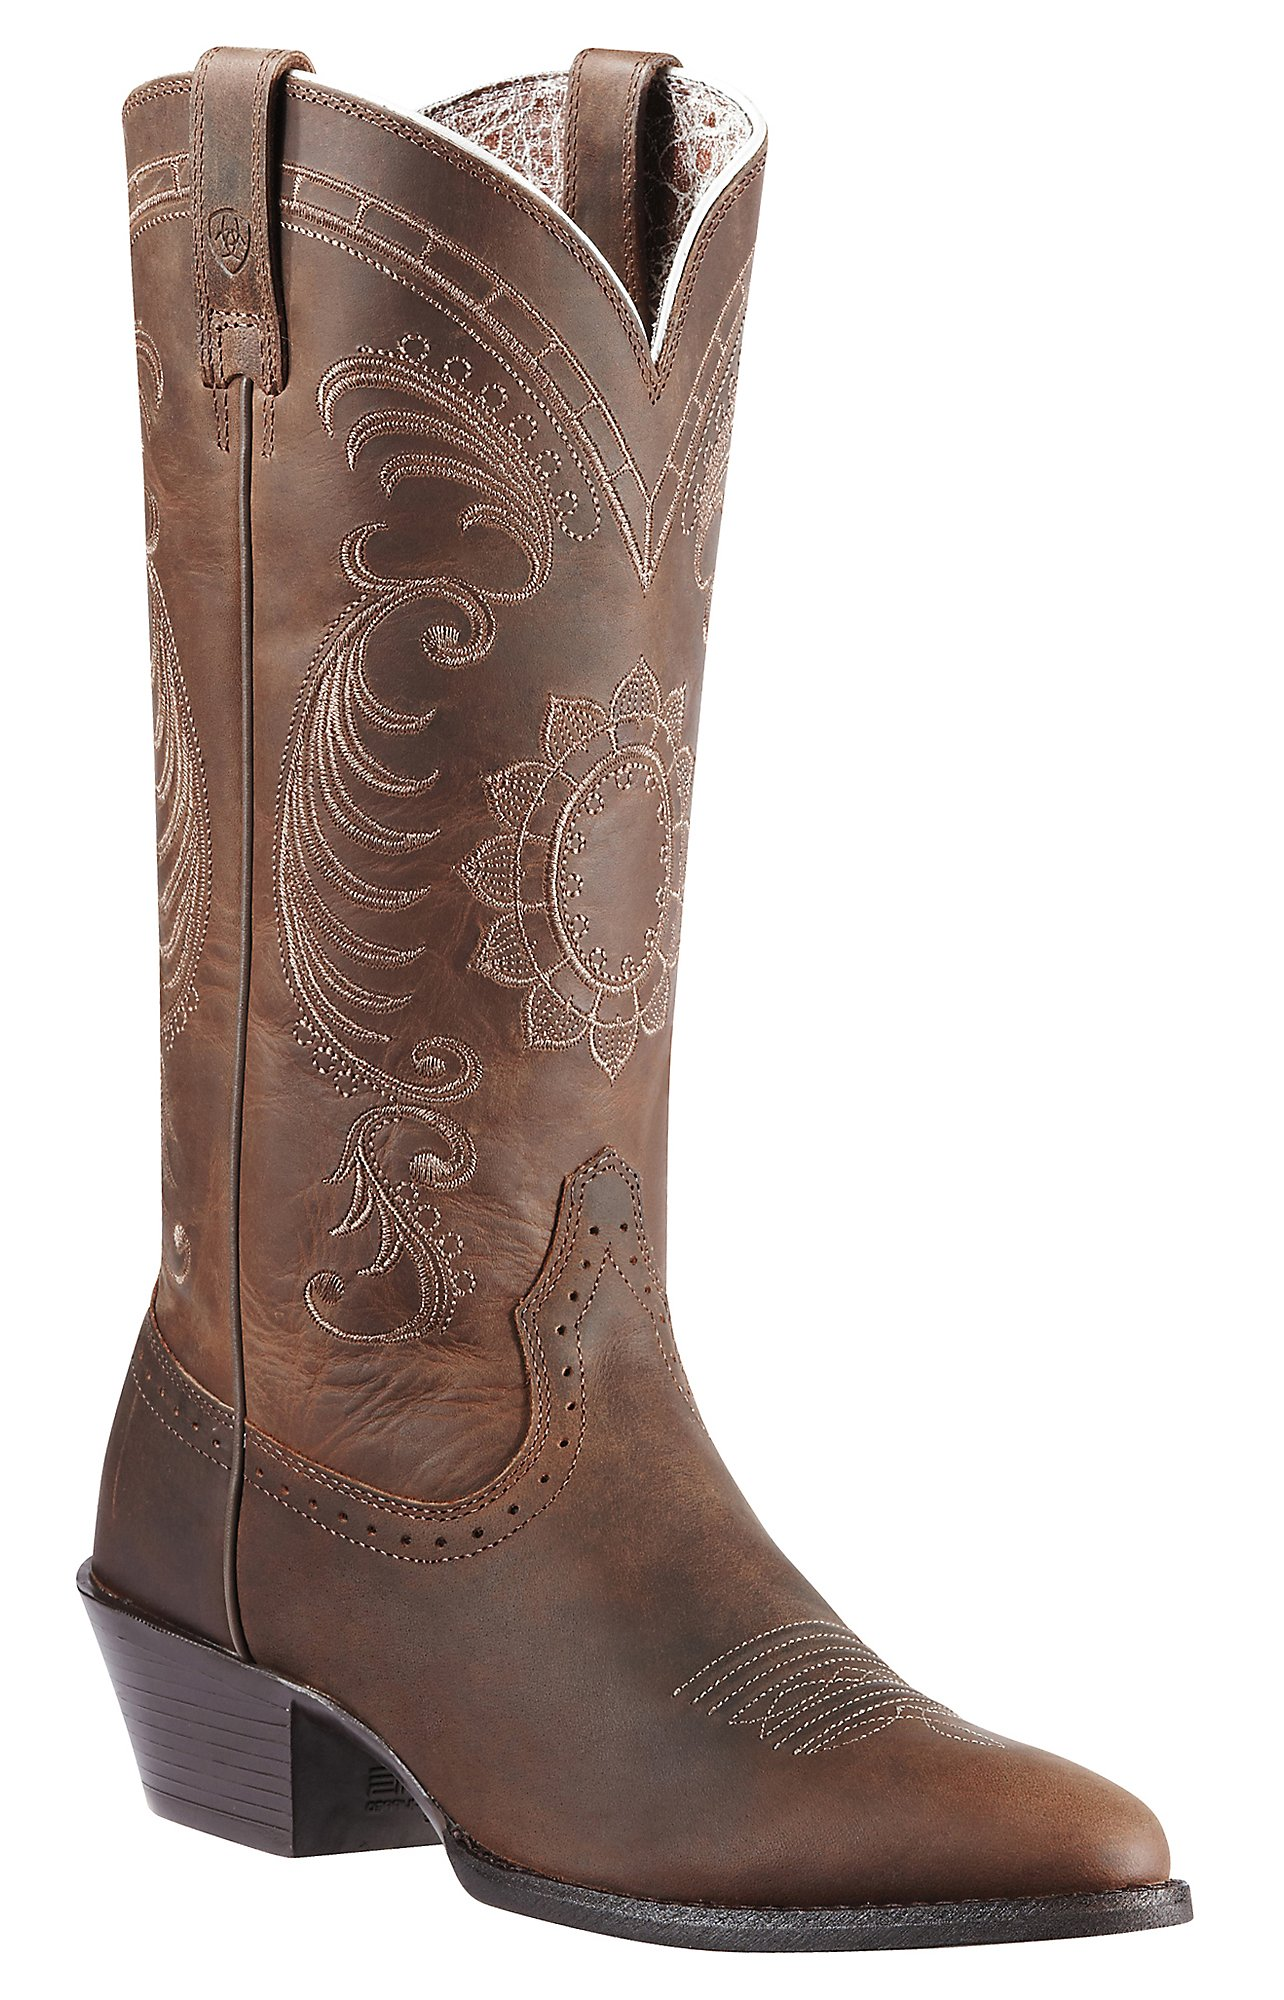 Cavender's Boot City has been a trusted cowboy boots and western wear outfitter for over 45 years, featuring the largest selection of boots in the world.